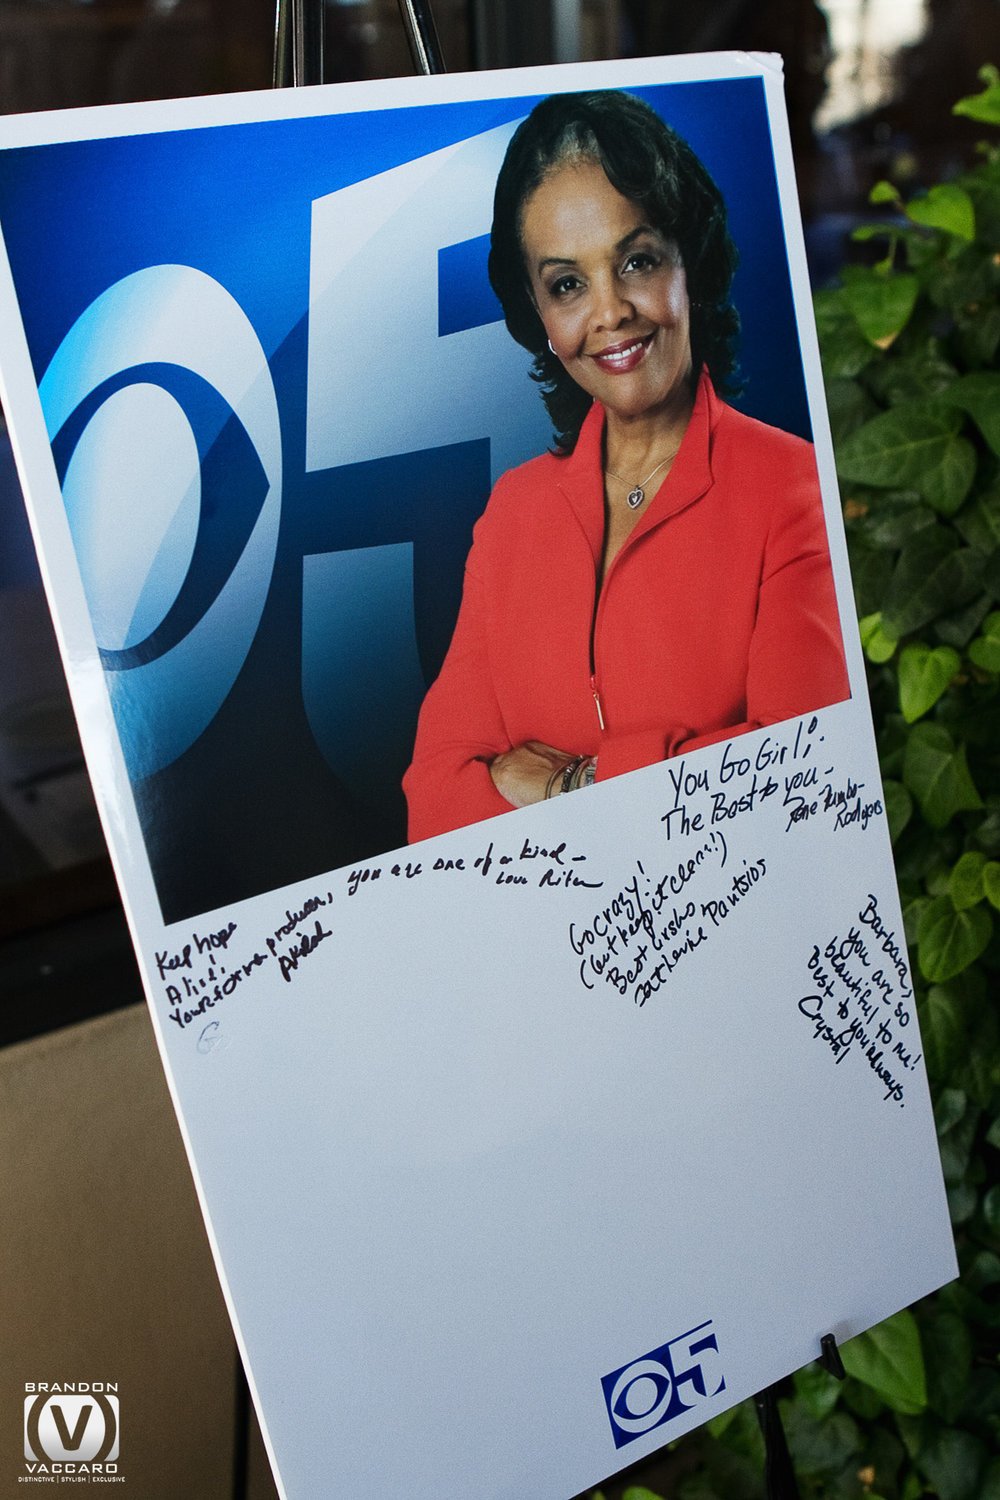 retirement-party-photographer-kpix-barbara-rodgers.jpg